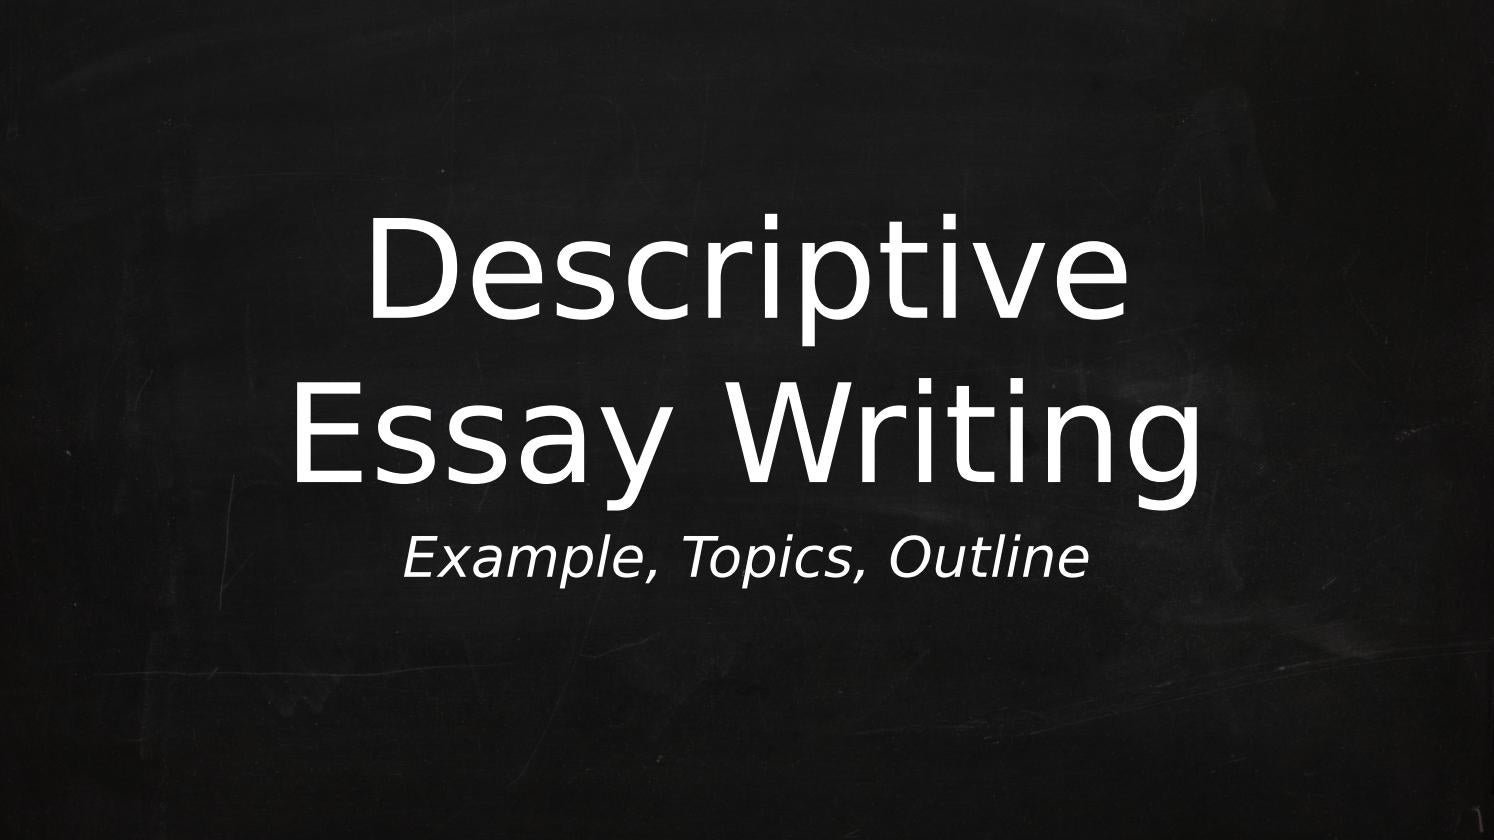 What Is a Descriptive Essay?